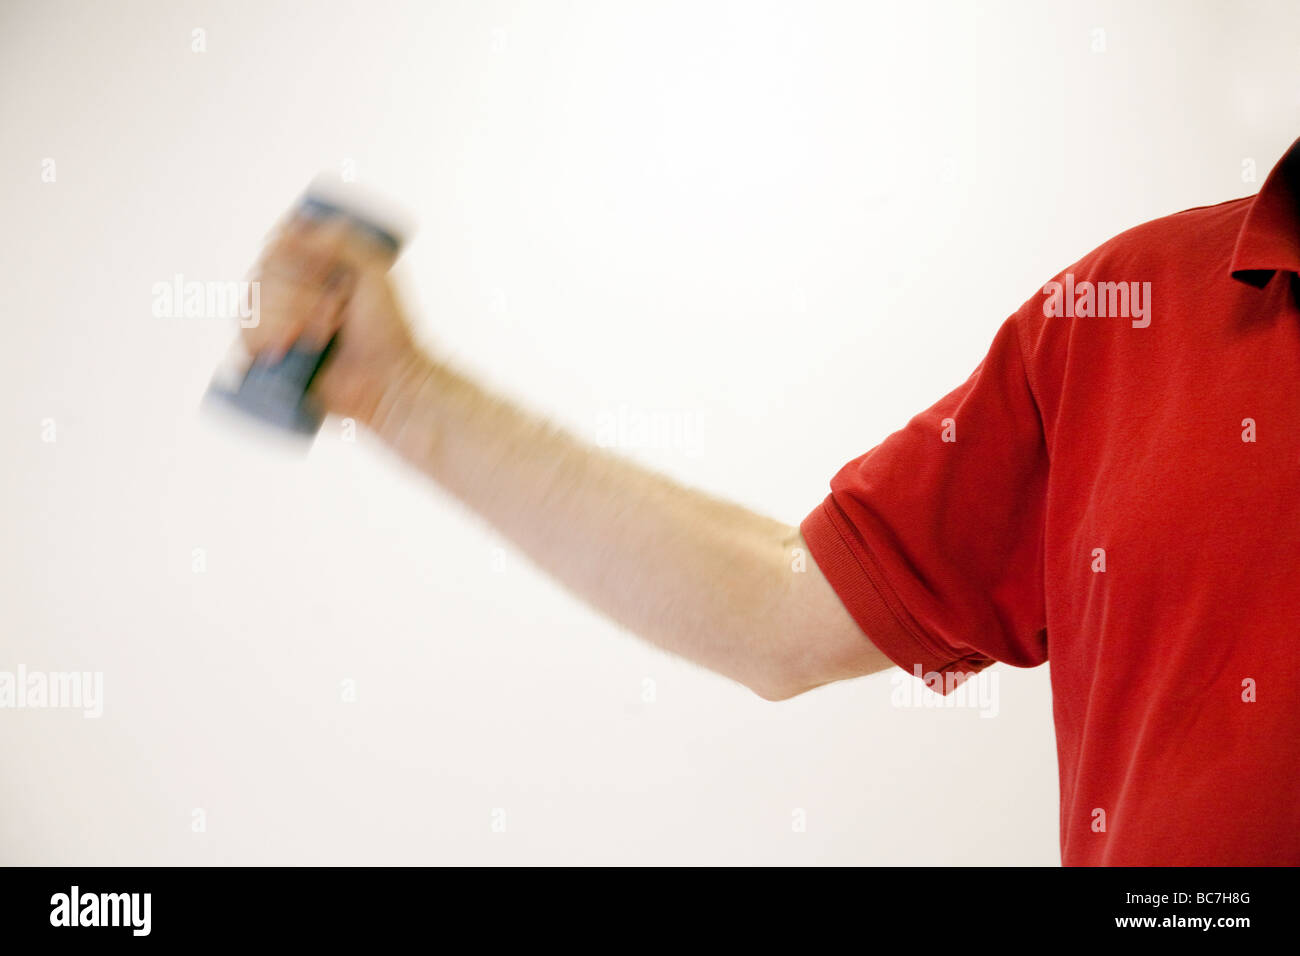 The arm of a middle aged man lifting weights - Stock Image